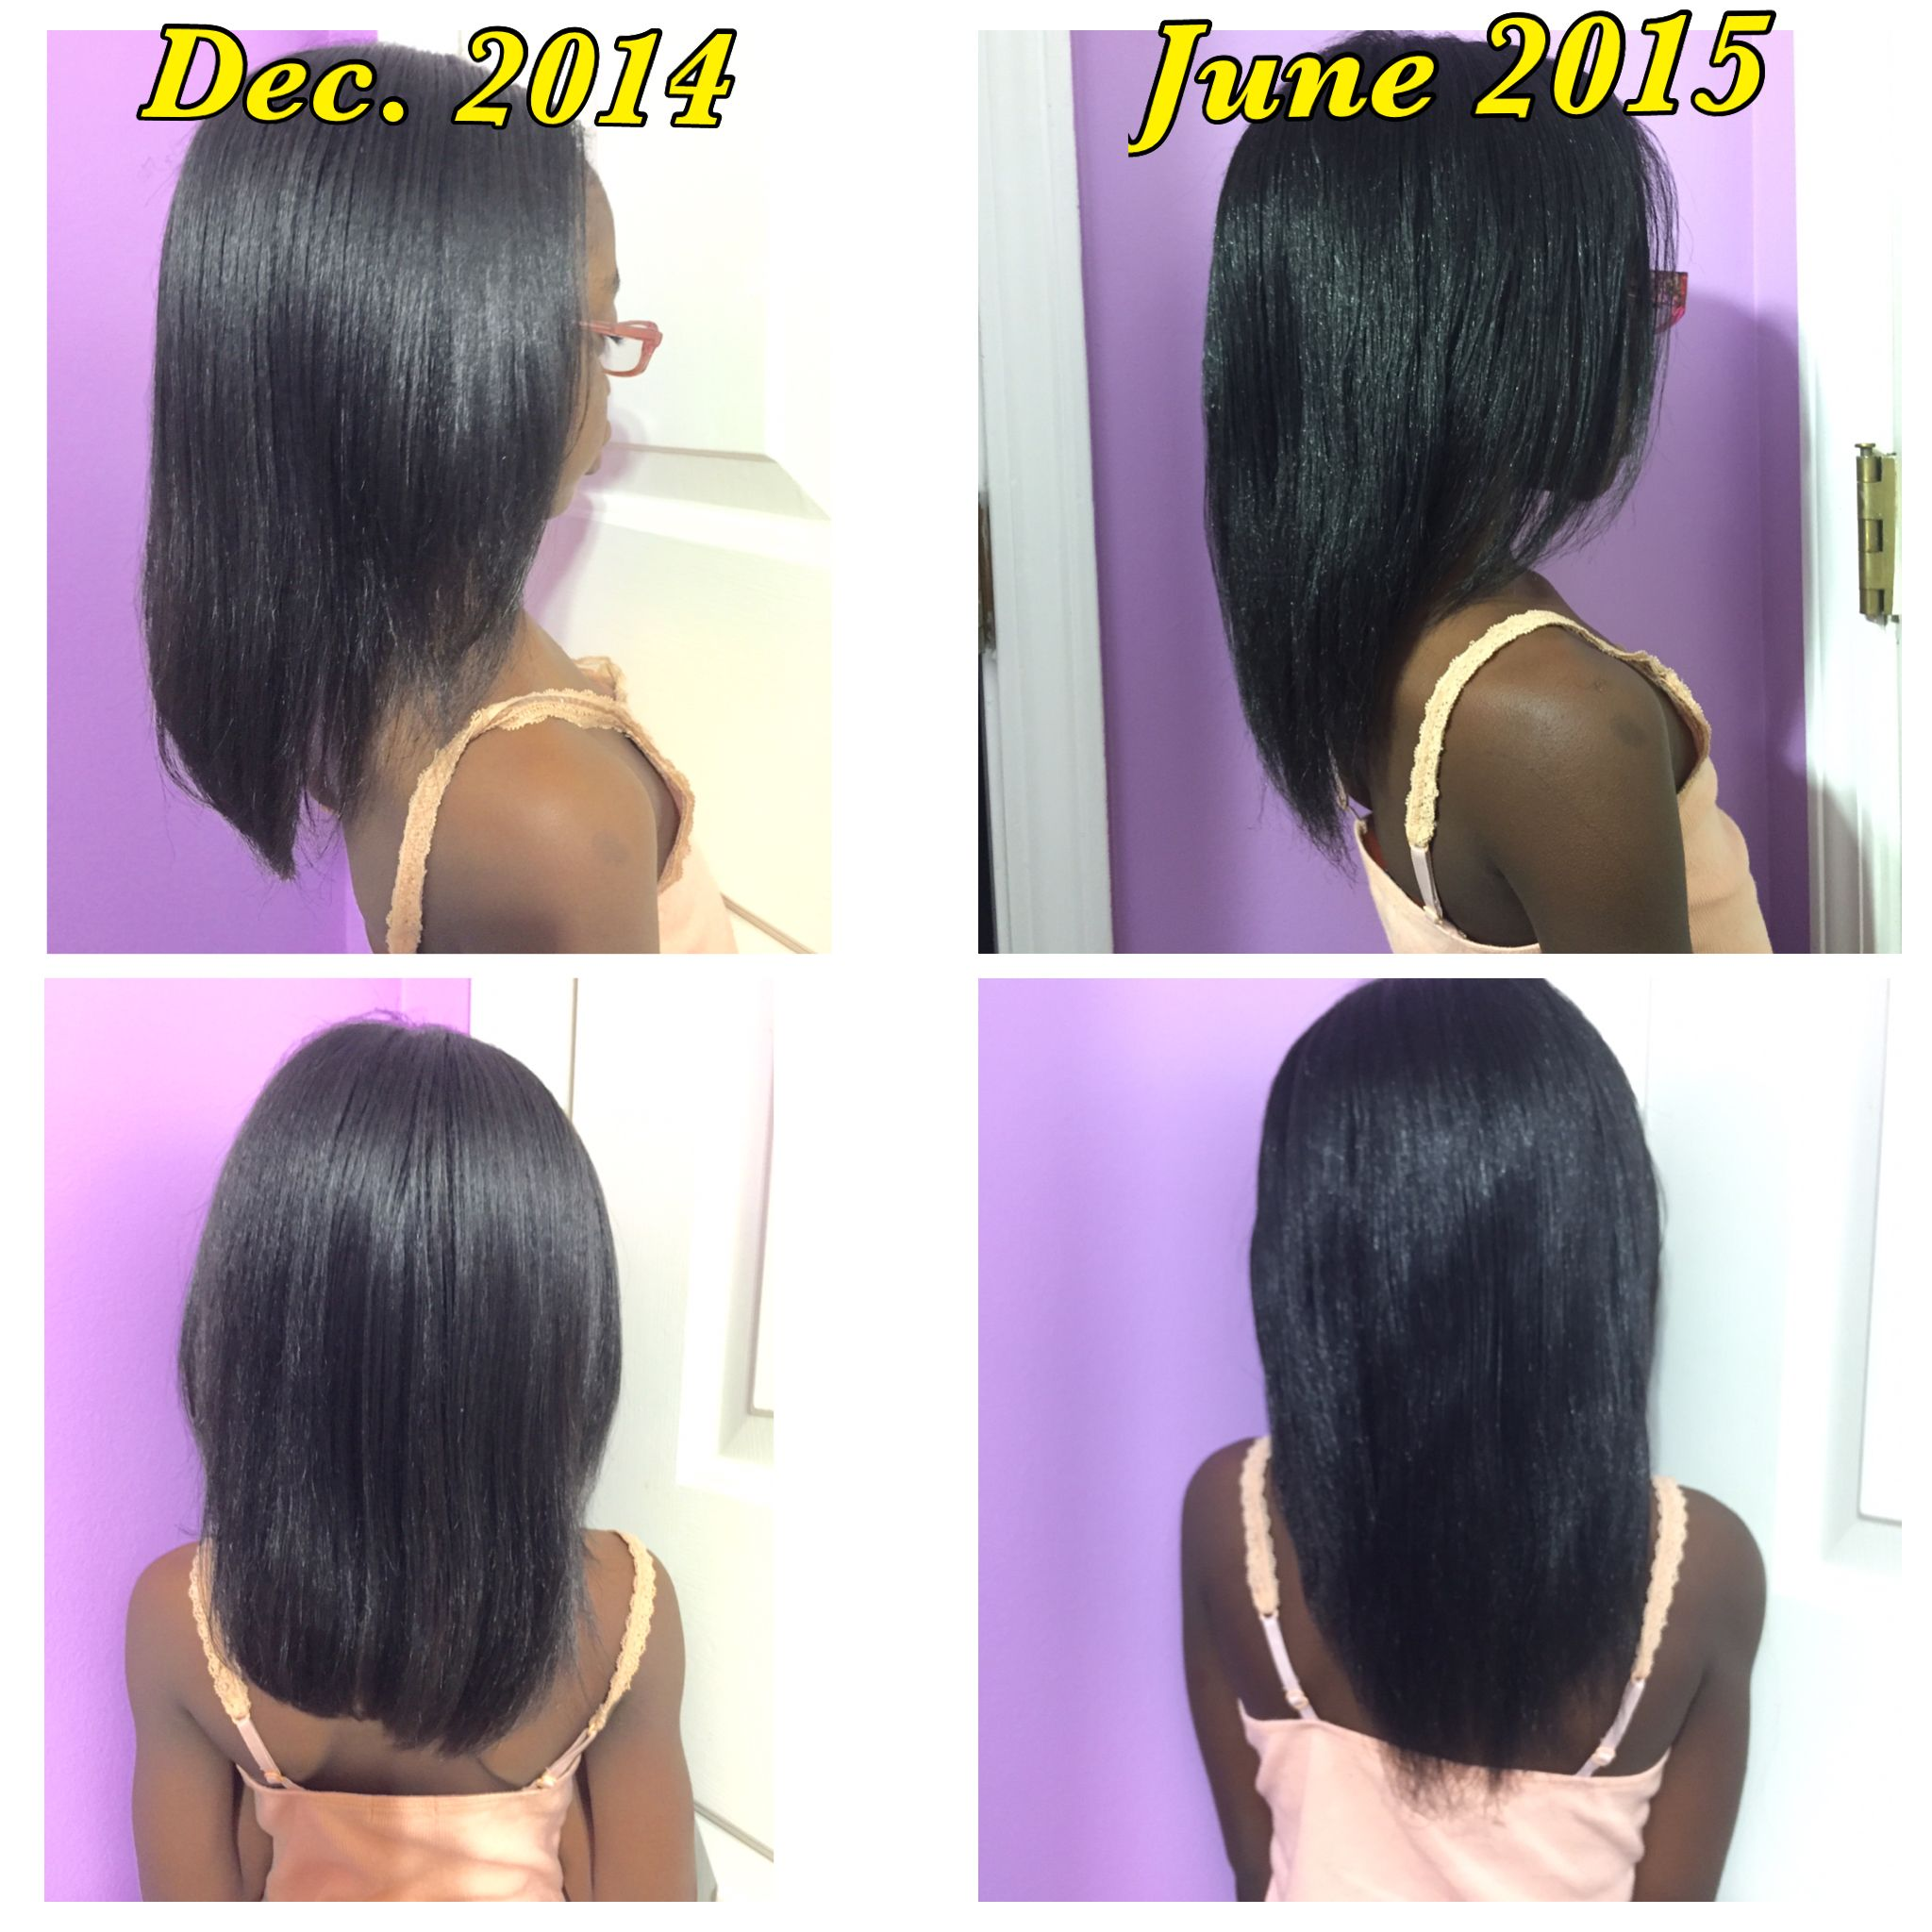 Hair Growth After Hair Has Been Braided 6 Months In Protective Styles Hair Growth Treatment Natural Hair Styles Grow Hair